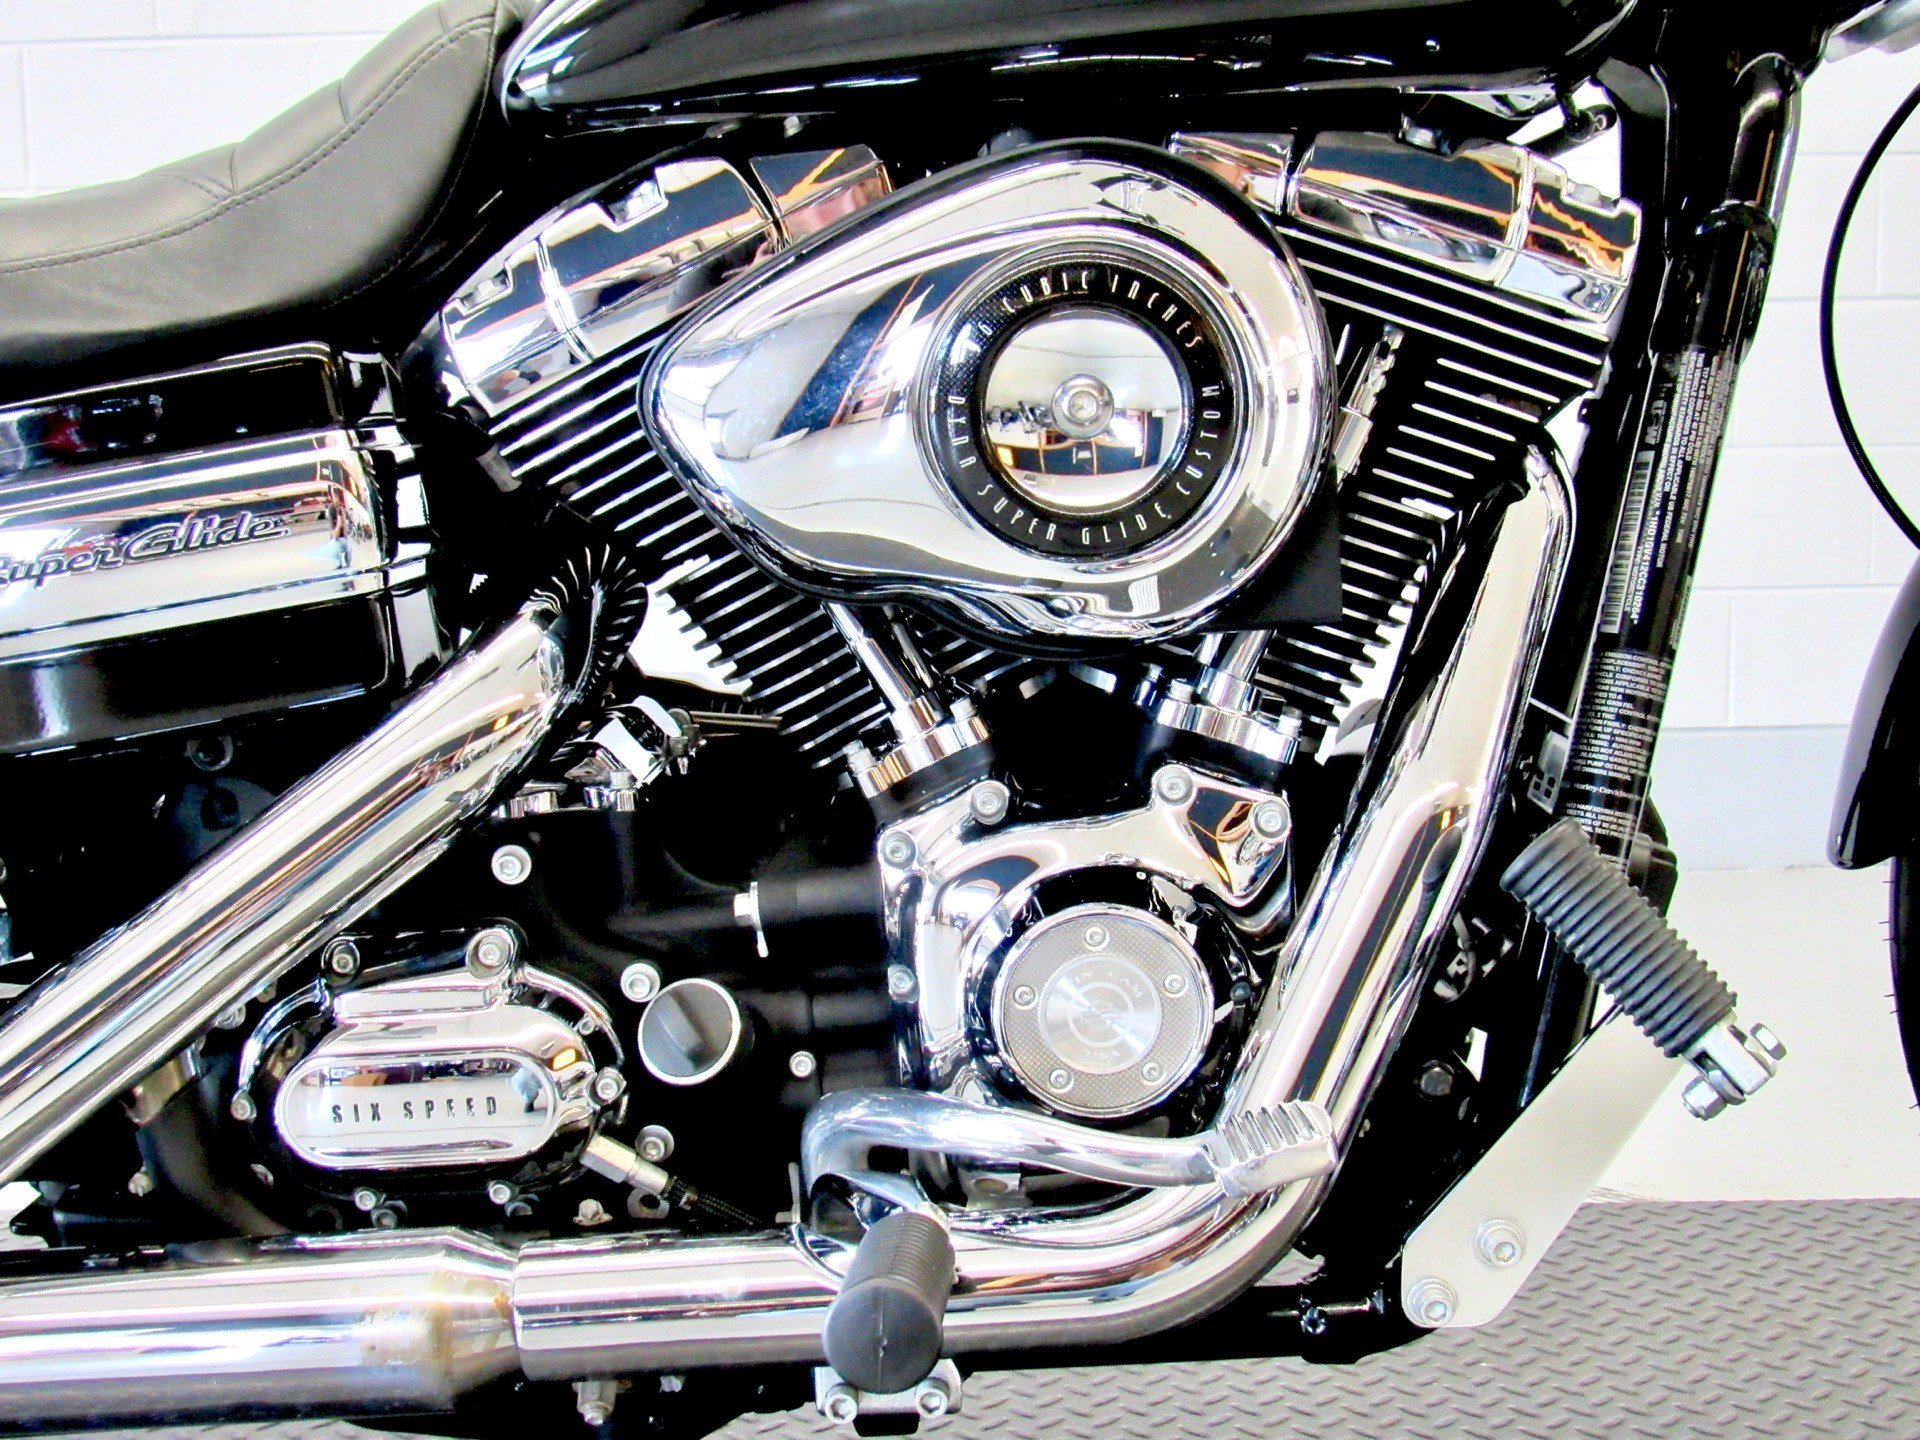 2012 Harley-Davidson Dyna® Super Glide® Custom in Fredericksburg, Virginia - Photo 14